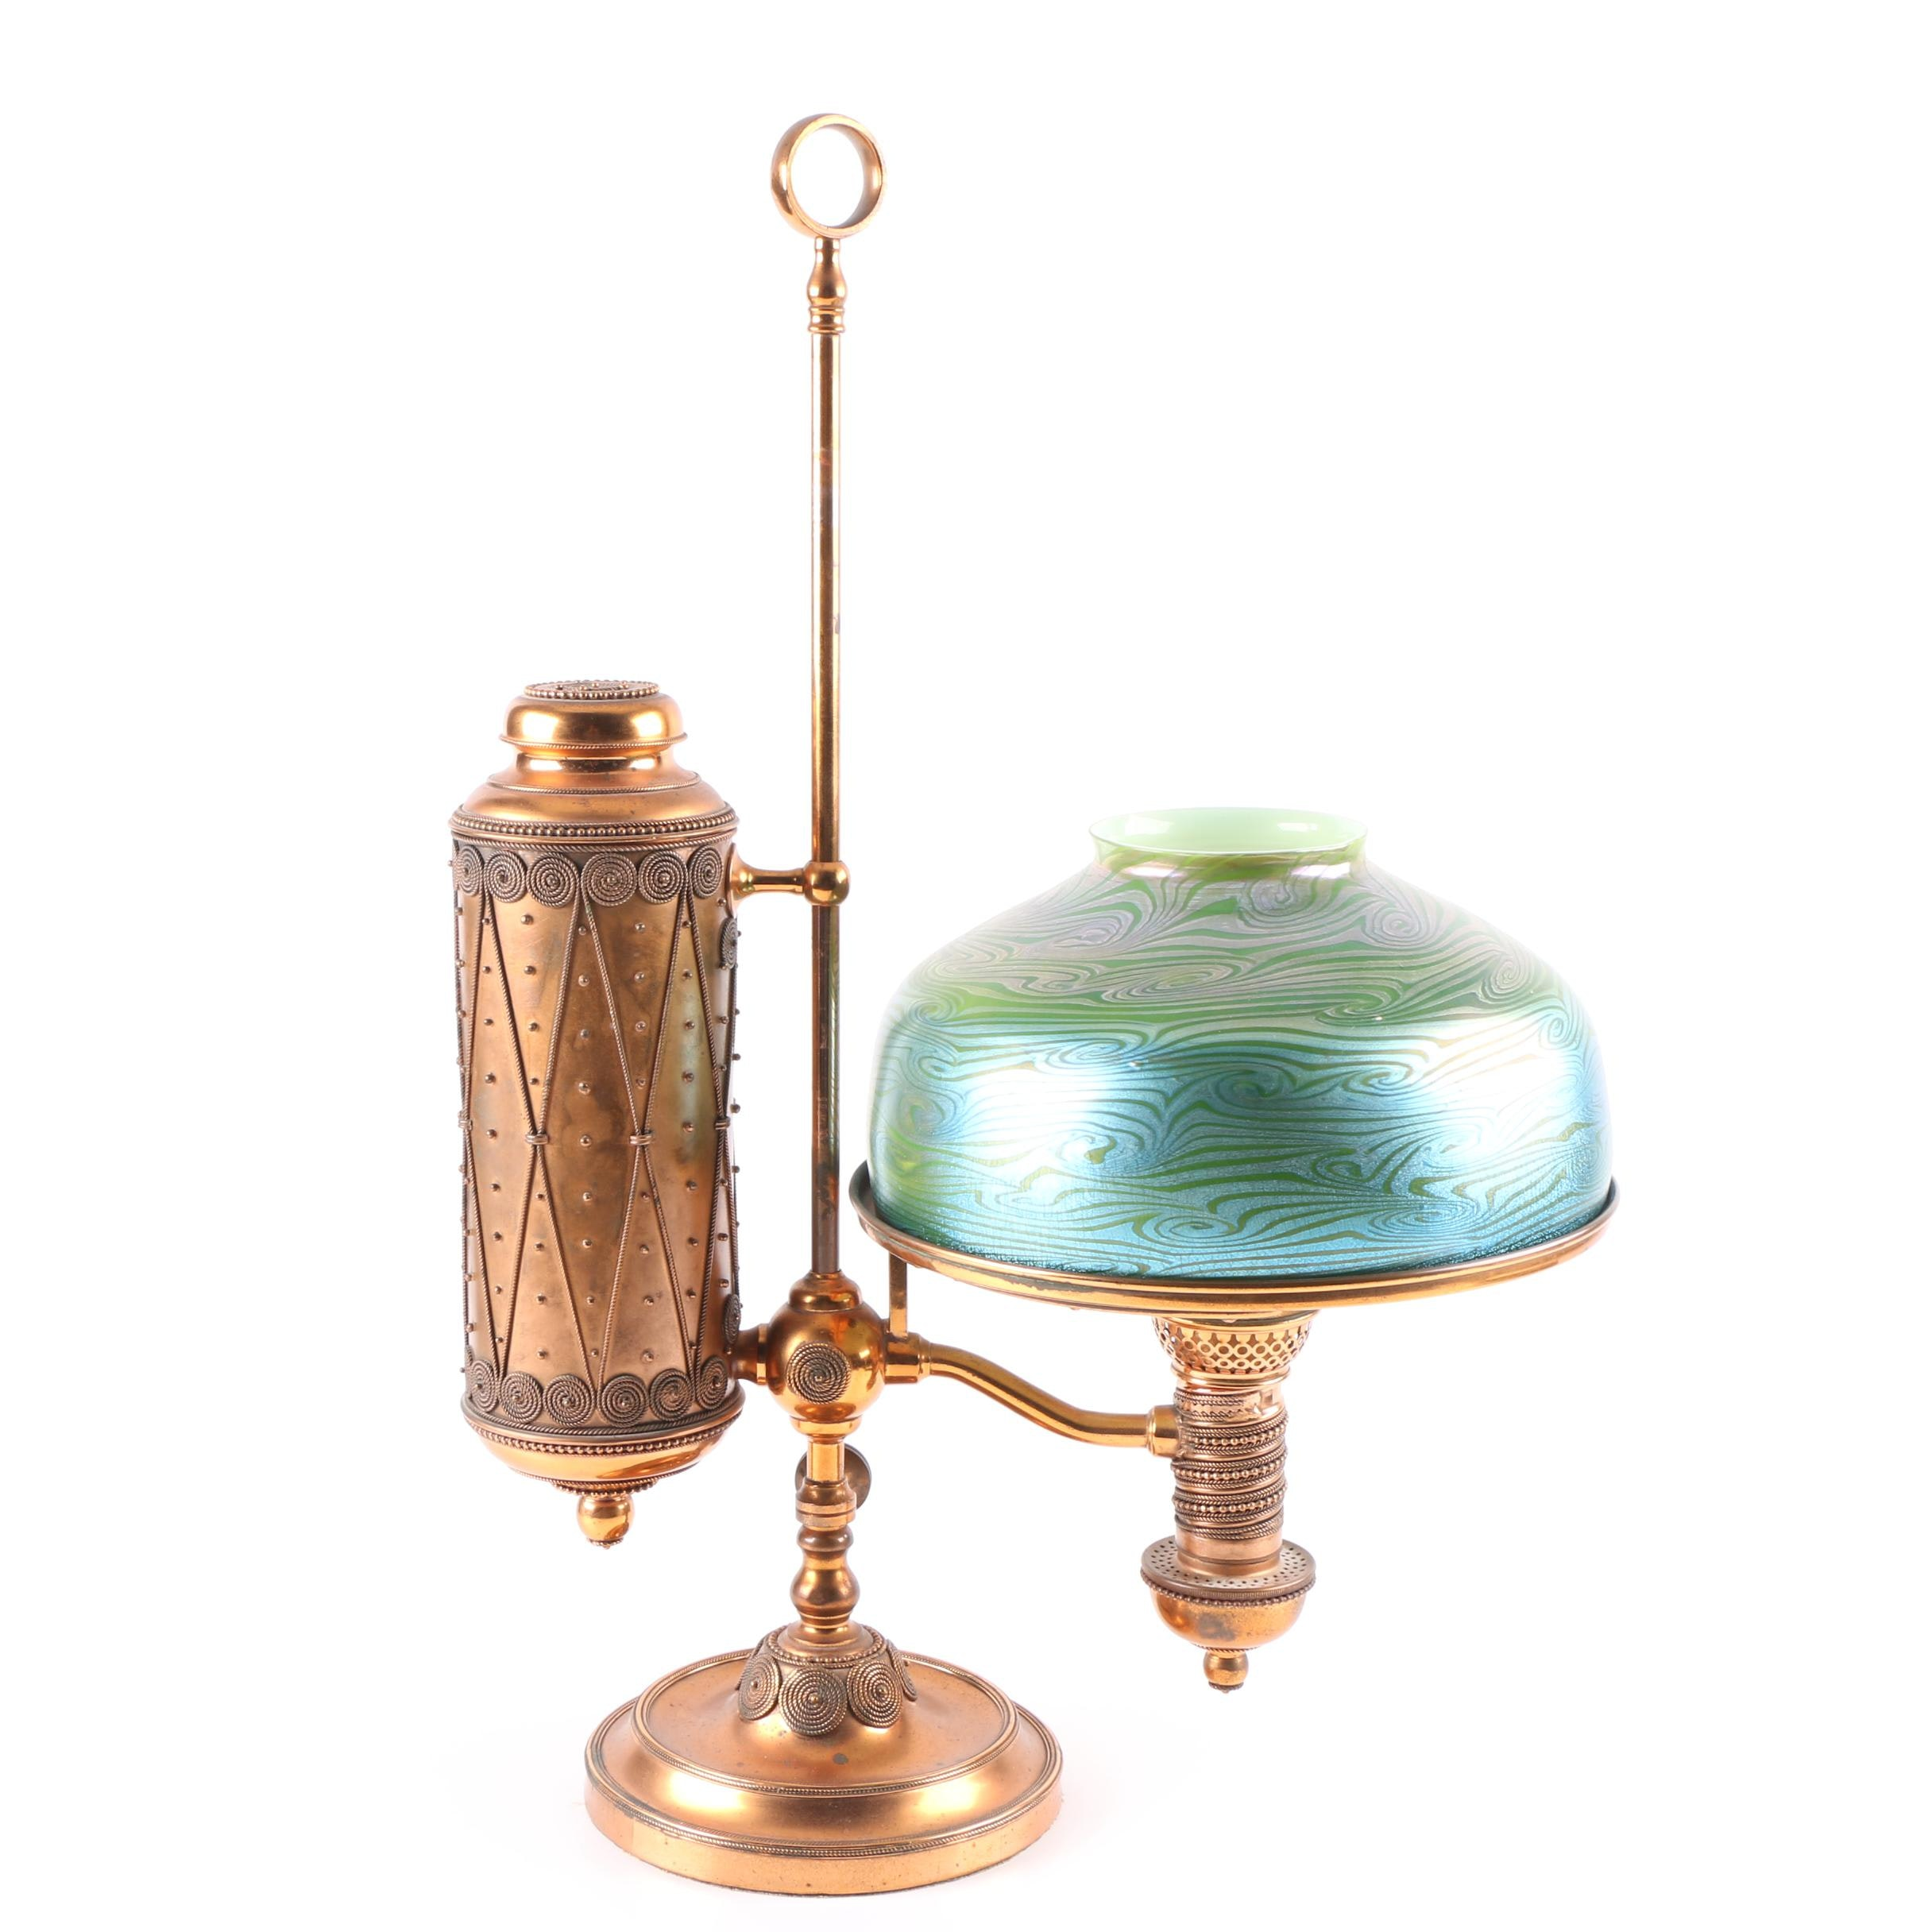 Tiffany Studios and Manhattan Brass Student Lamp with Favrile Glass Shade